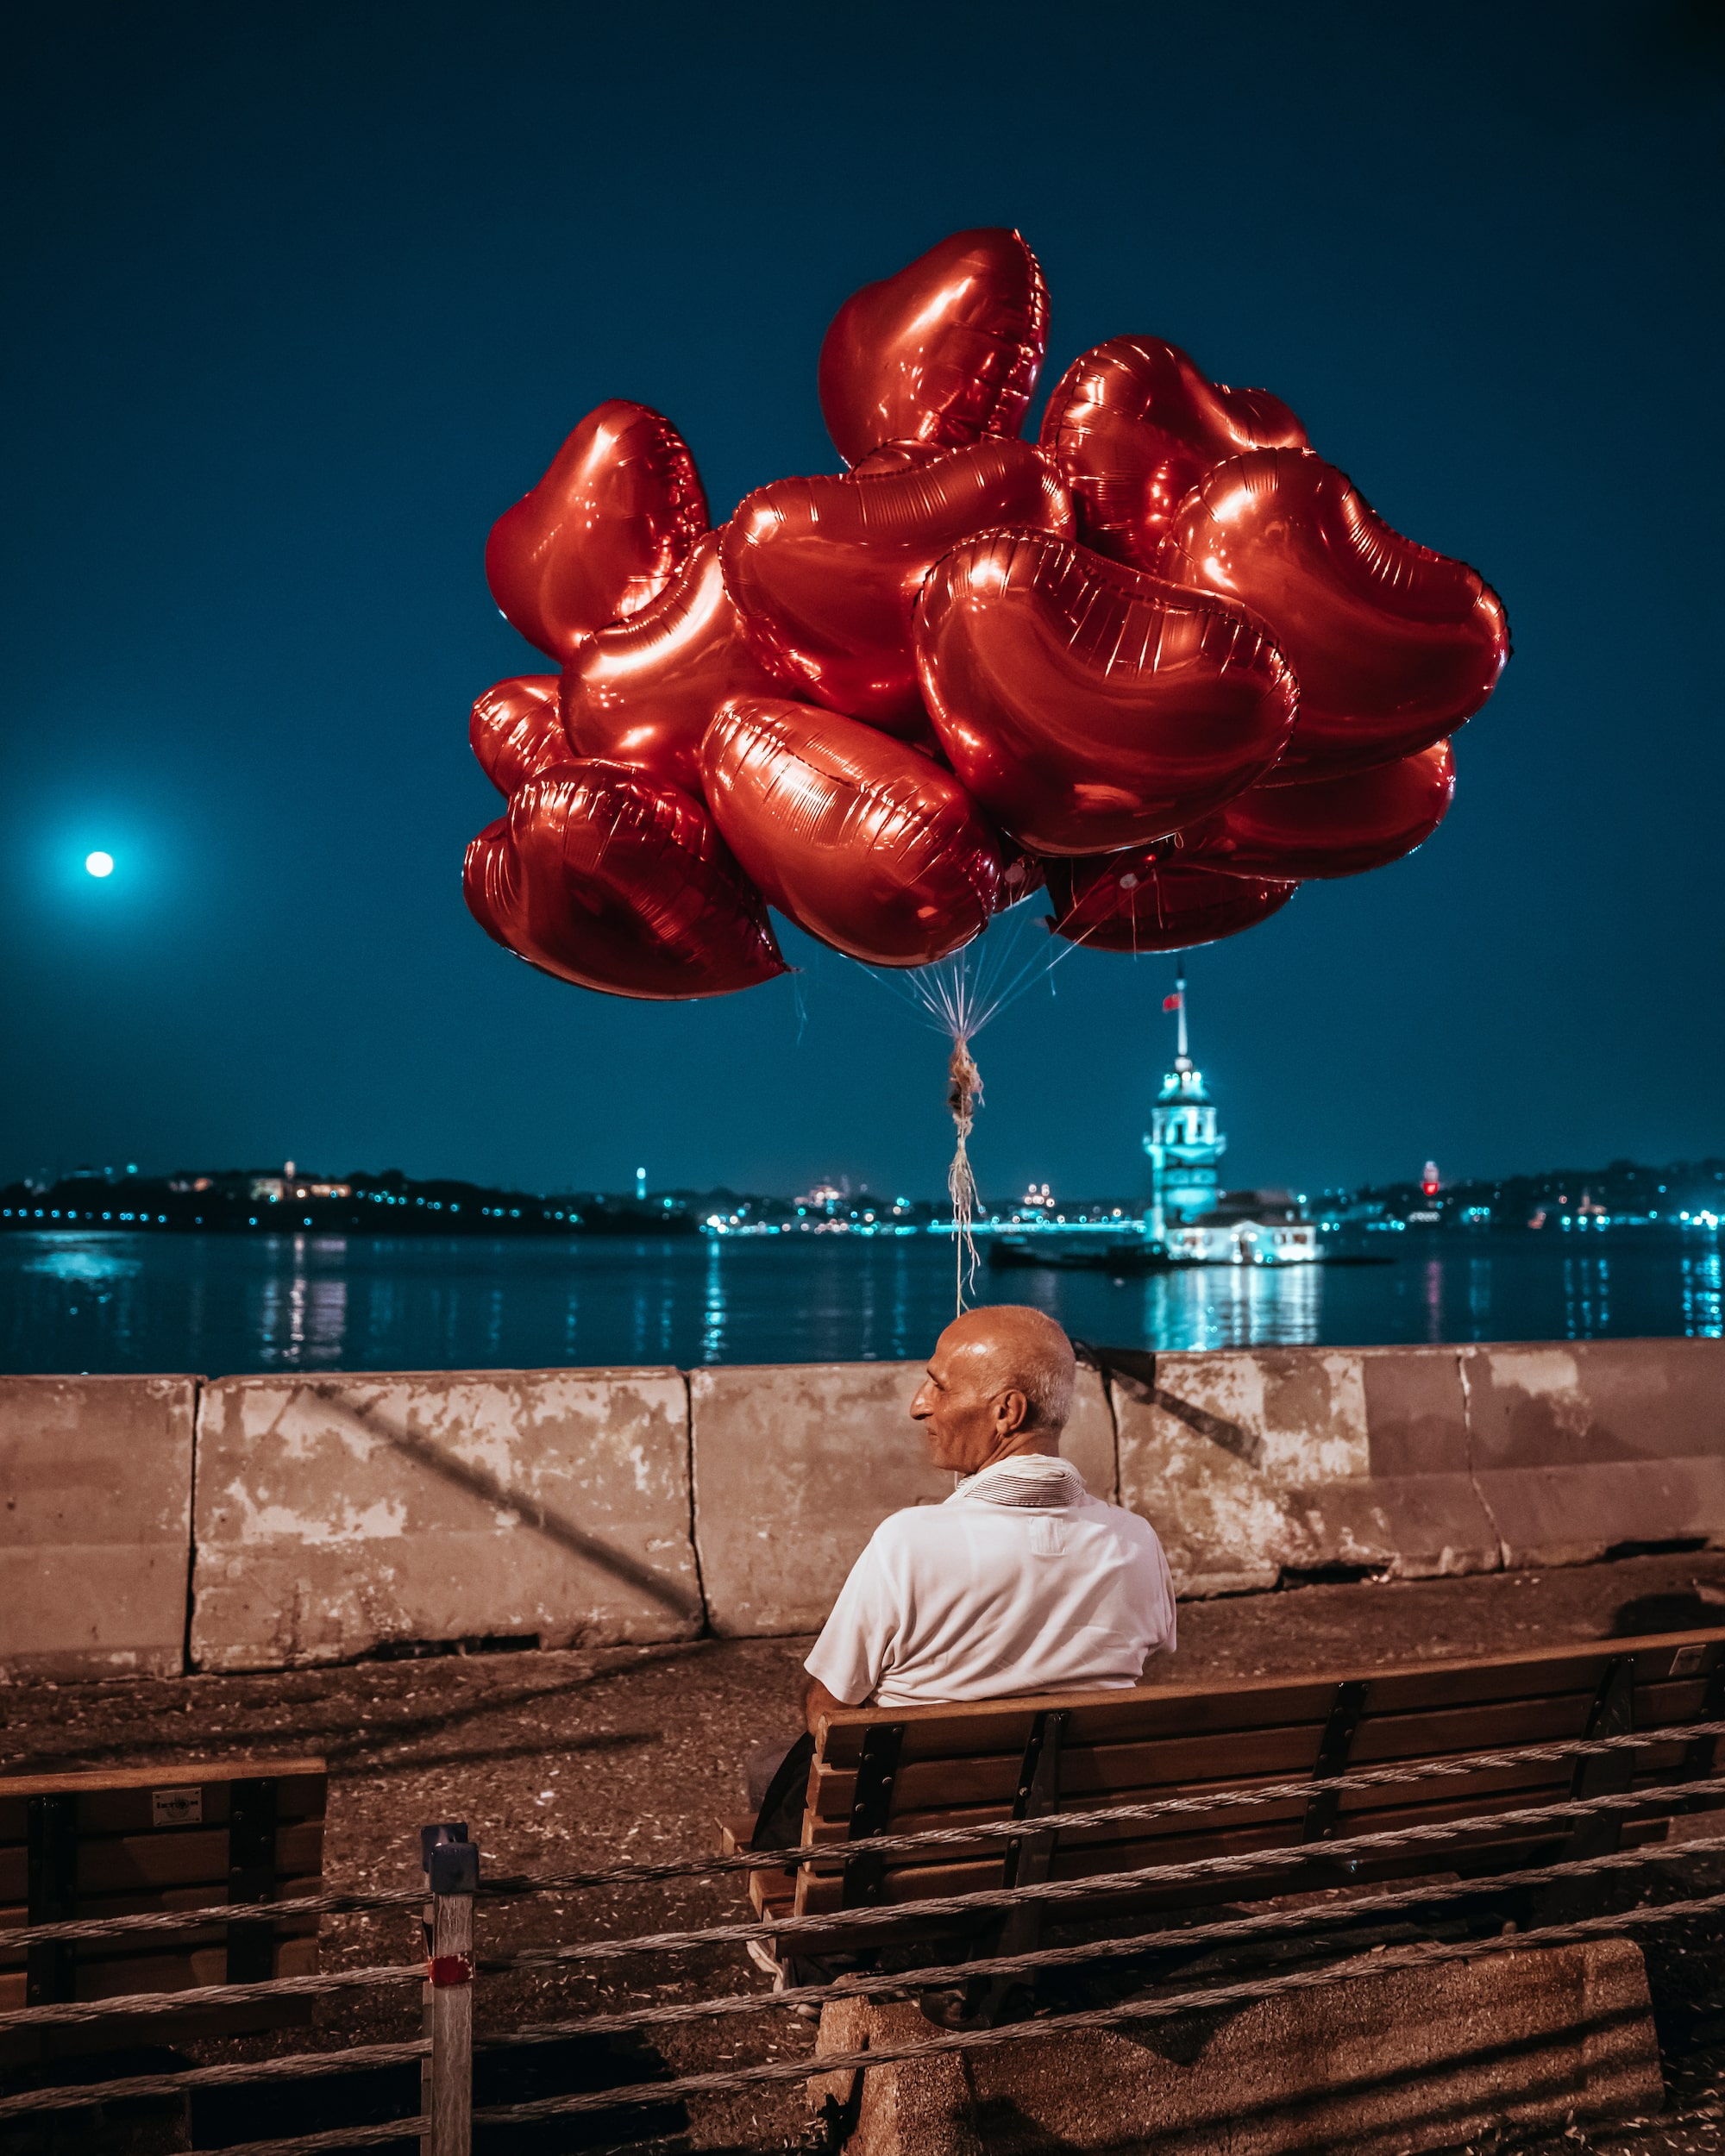 İlkin Karacan Karakus sony A7RM2 seated man holding a bunch of red heart balloons